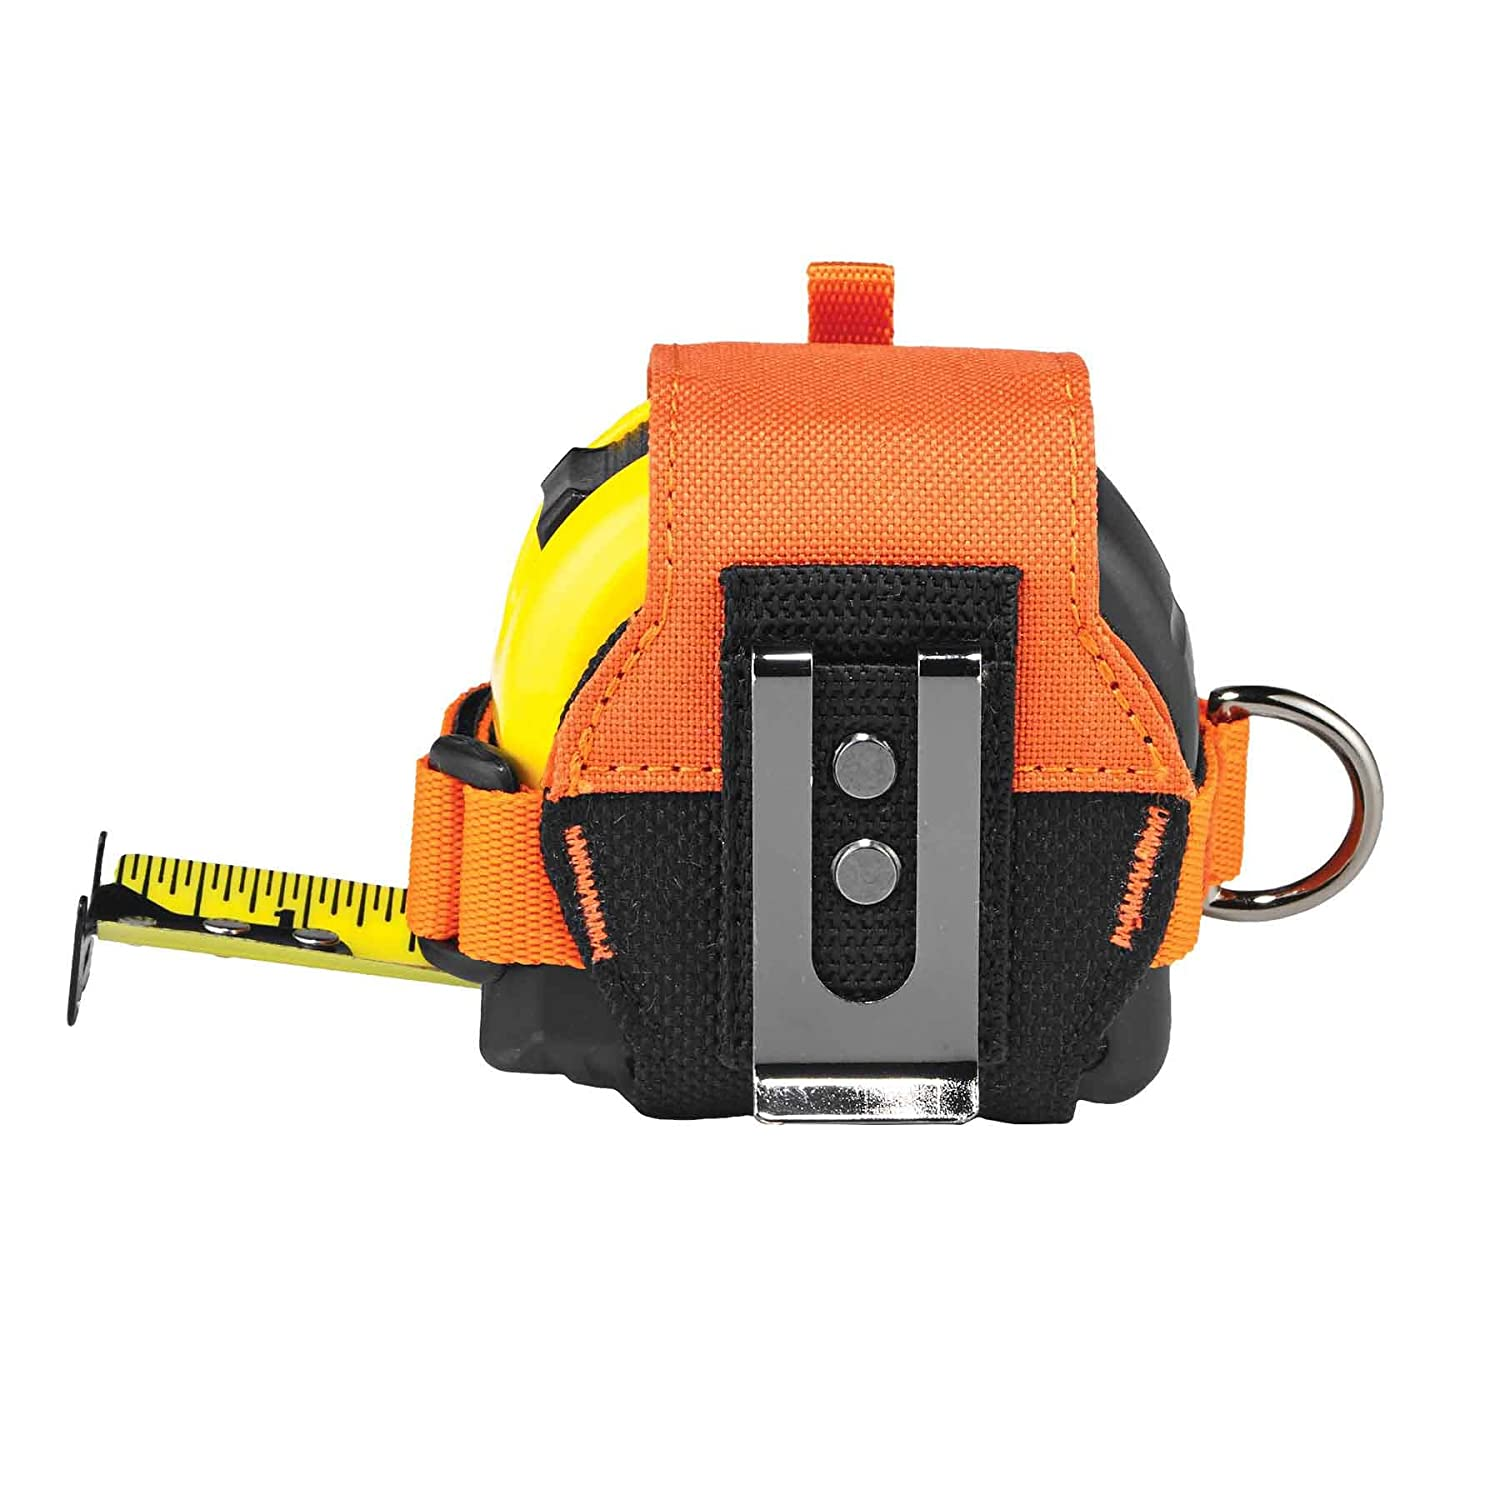 Orange Ergodyne Squids 3770 Tape Measure Holder